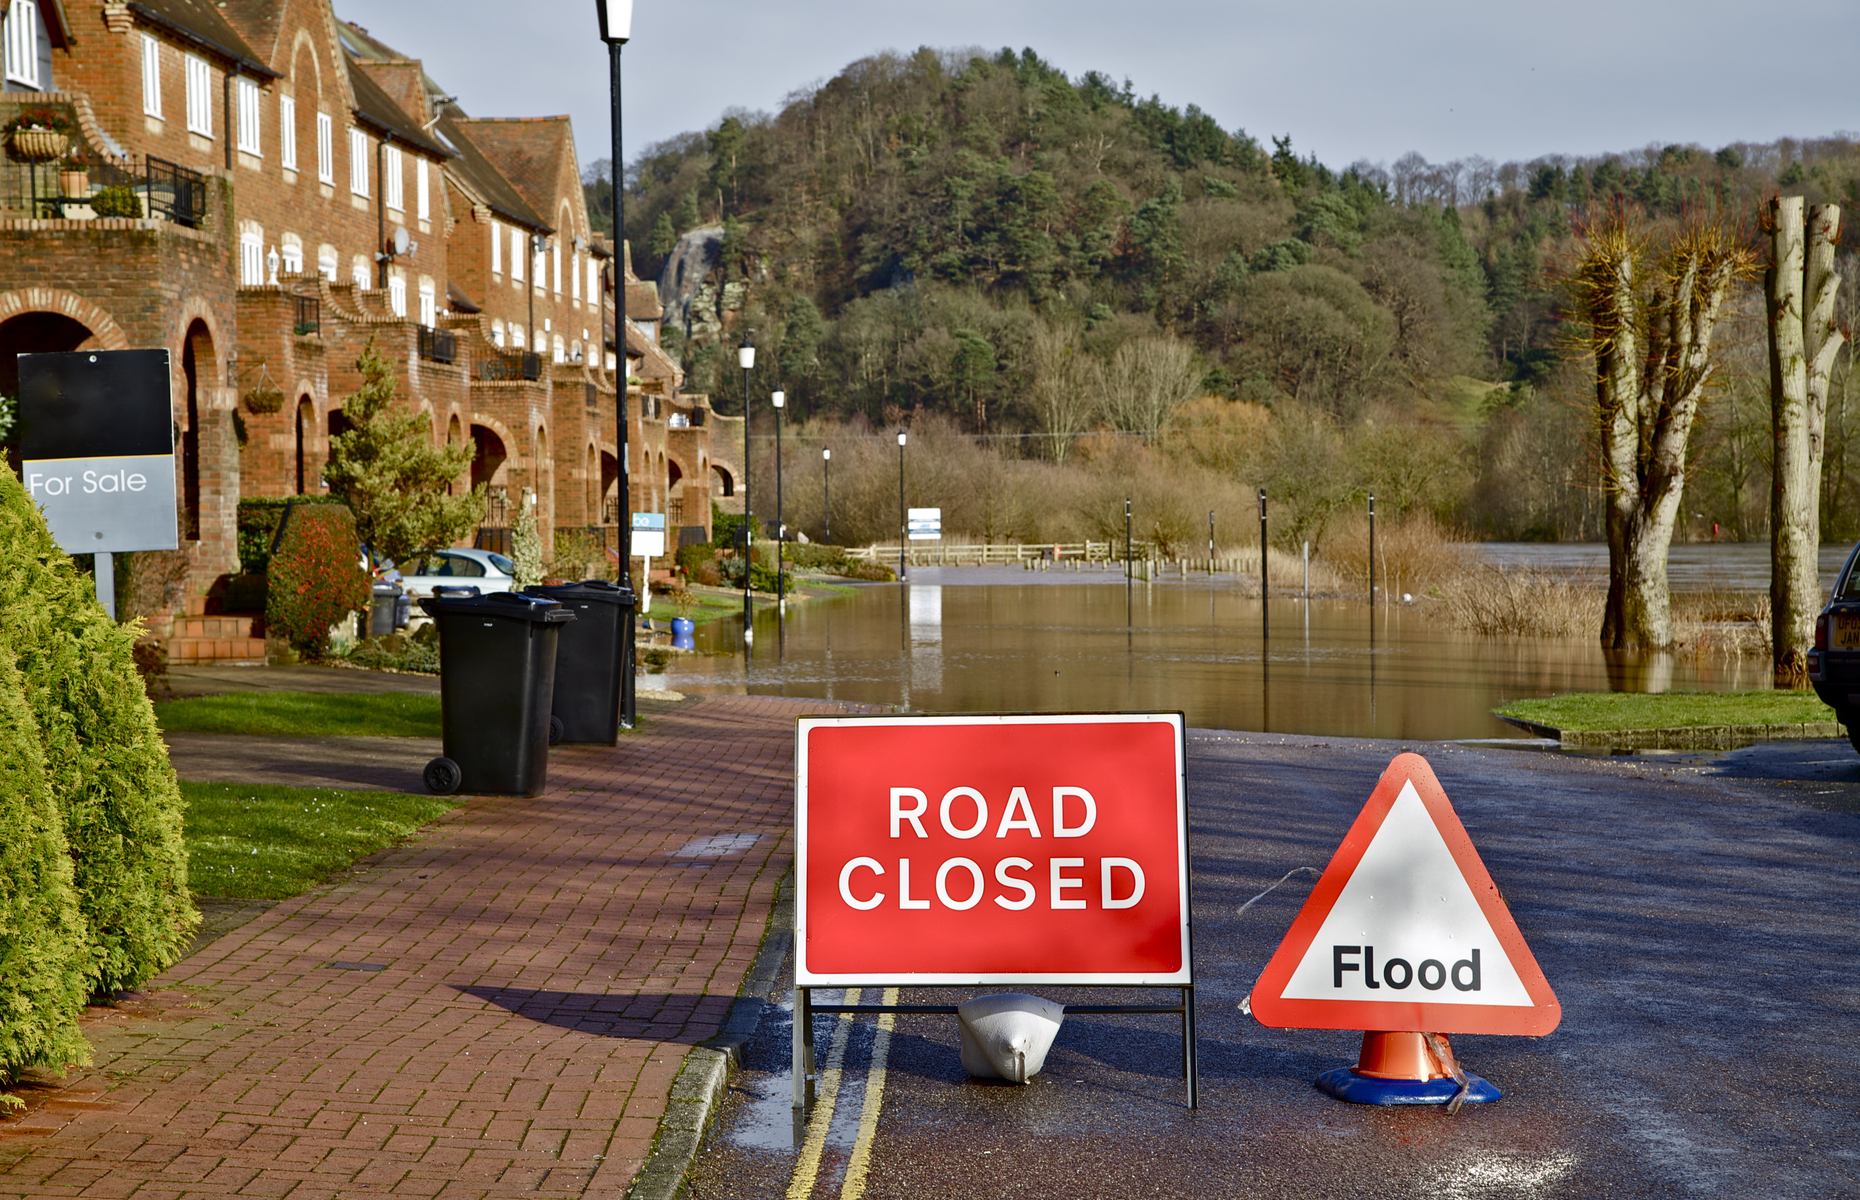 Storm damage lands homeowners with £17,000 bill